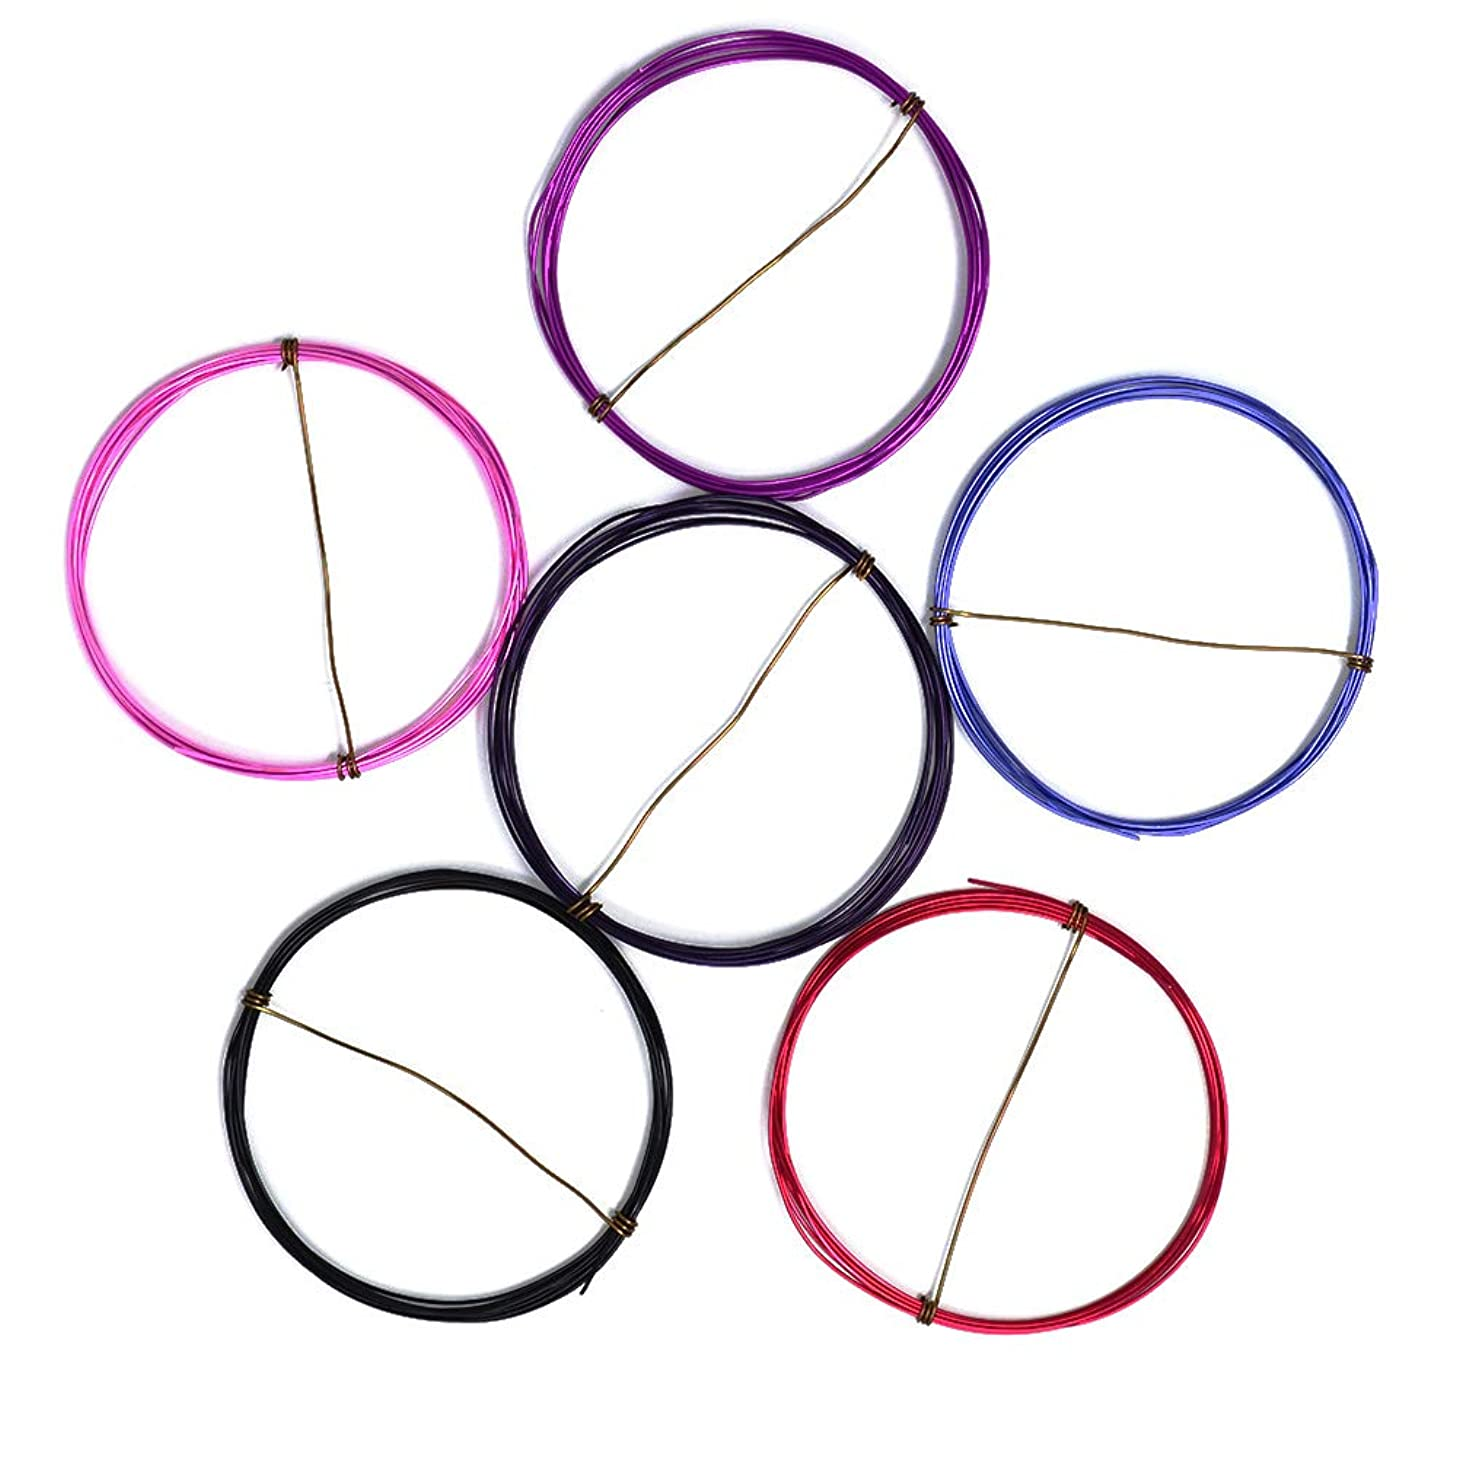 Berry Mix - Enameled Copper Wire Spools – 22 Gauge - Amethyst, Black, Hot Pink, Lavender, Magenta, Purple - 5 feet of Each Color (30 Total feet)